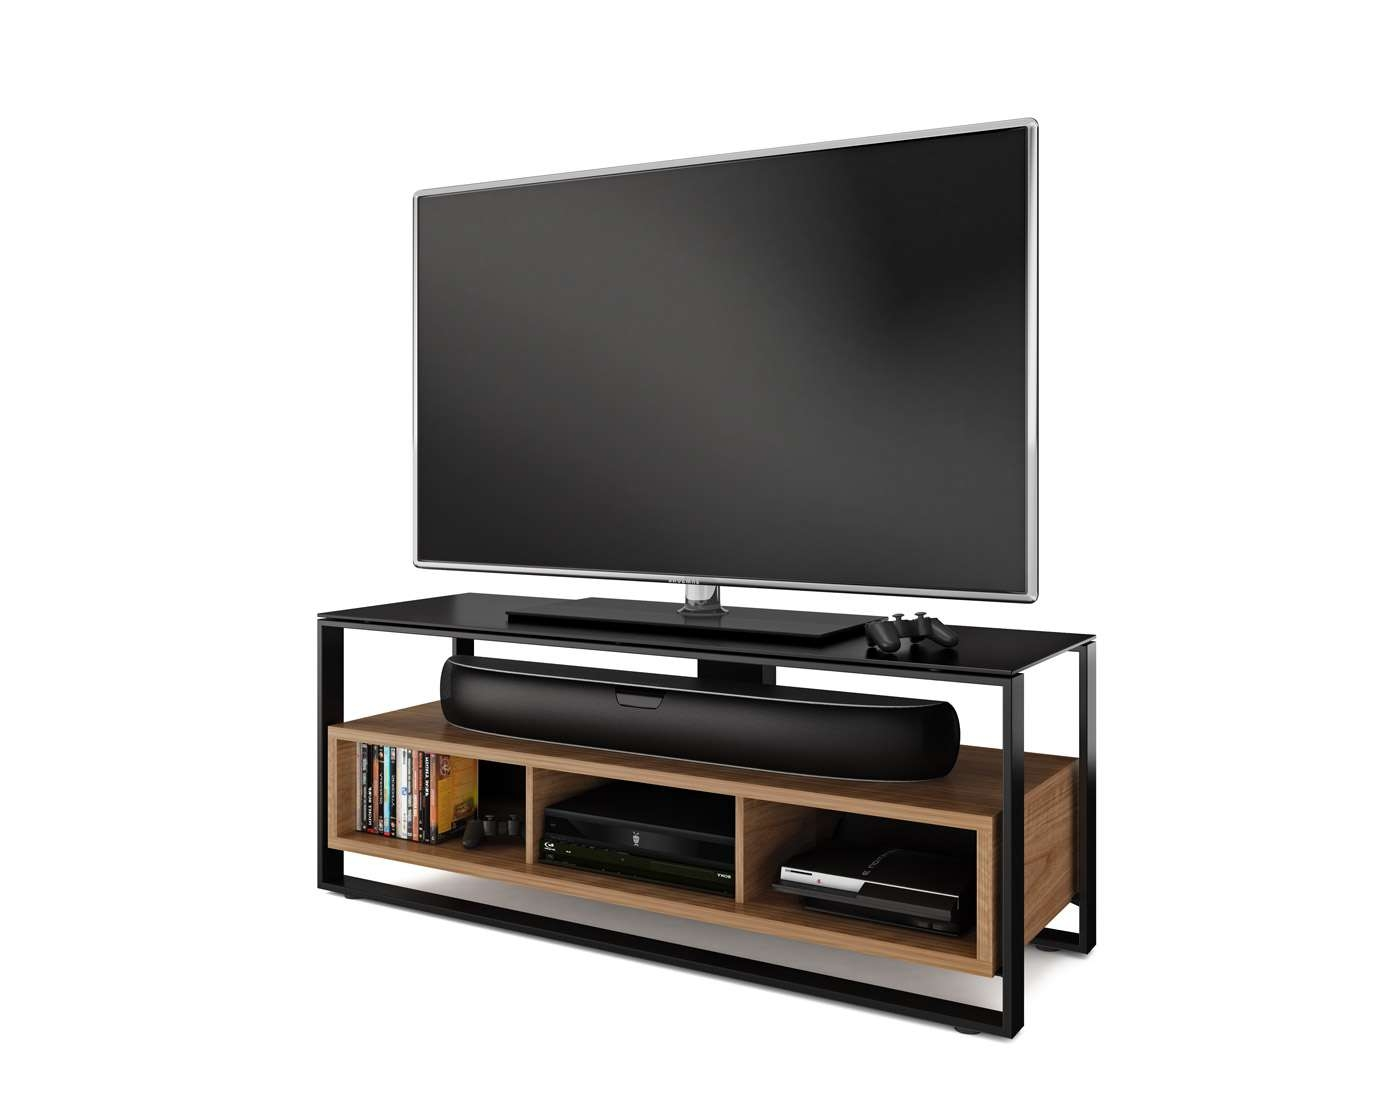 Furnitures Sonda Tv Stand Bdi Designer Stands And Cabinets For With Tv Stands With Back Panel (View 6 of 15)